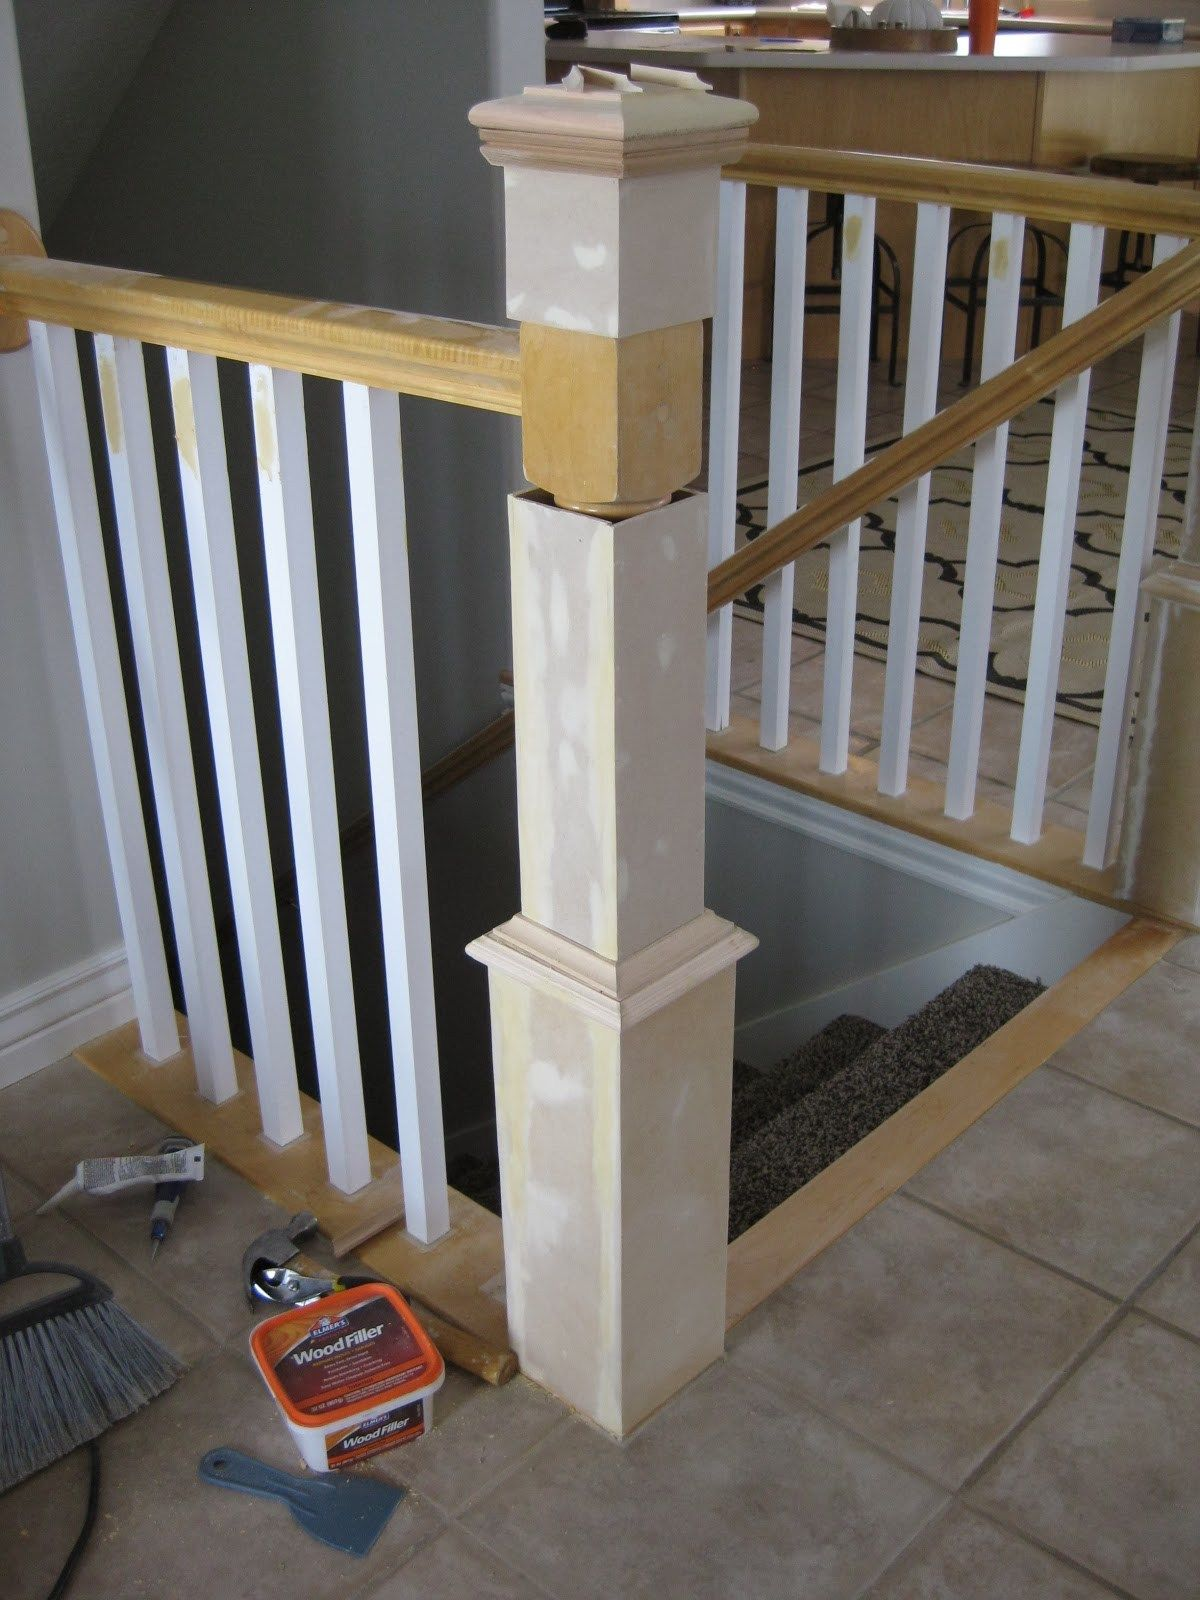 Update A Banister With Diy Newel Post And Spindles Tda | Newel Posts And Spindles | Custom | Craftsman Style | Lj Smith | Starting | Metal